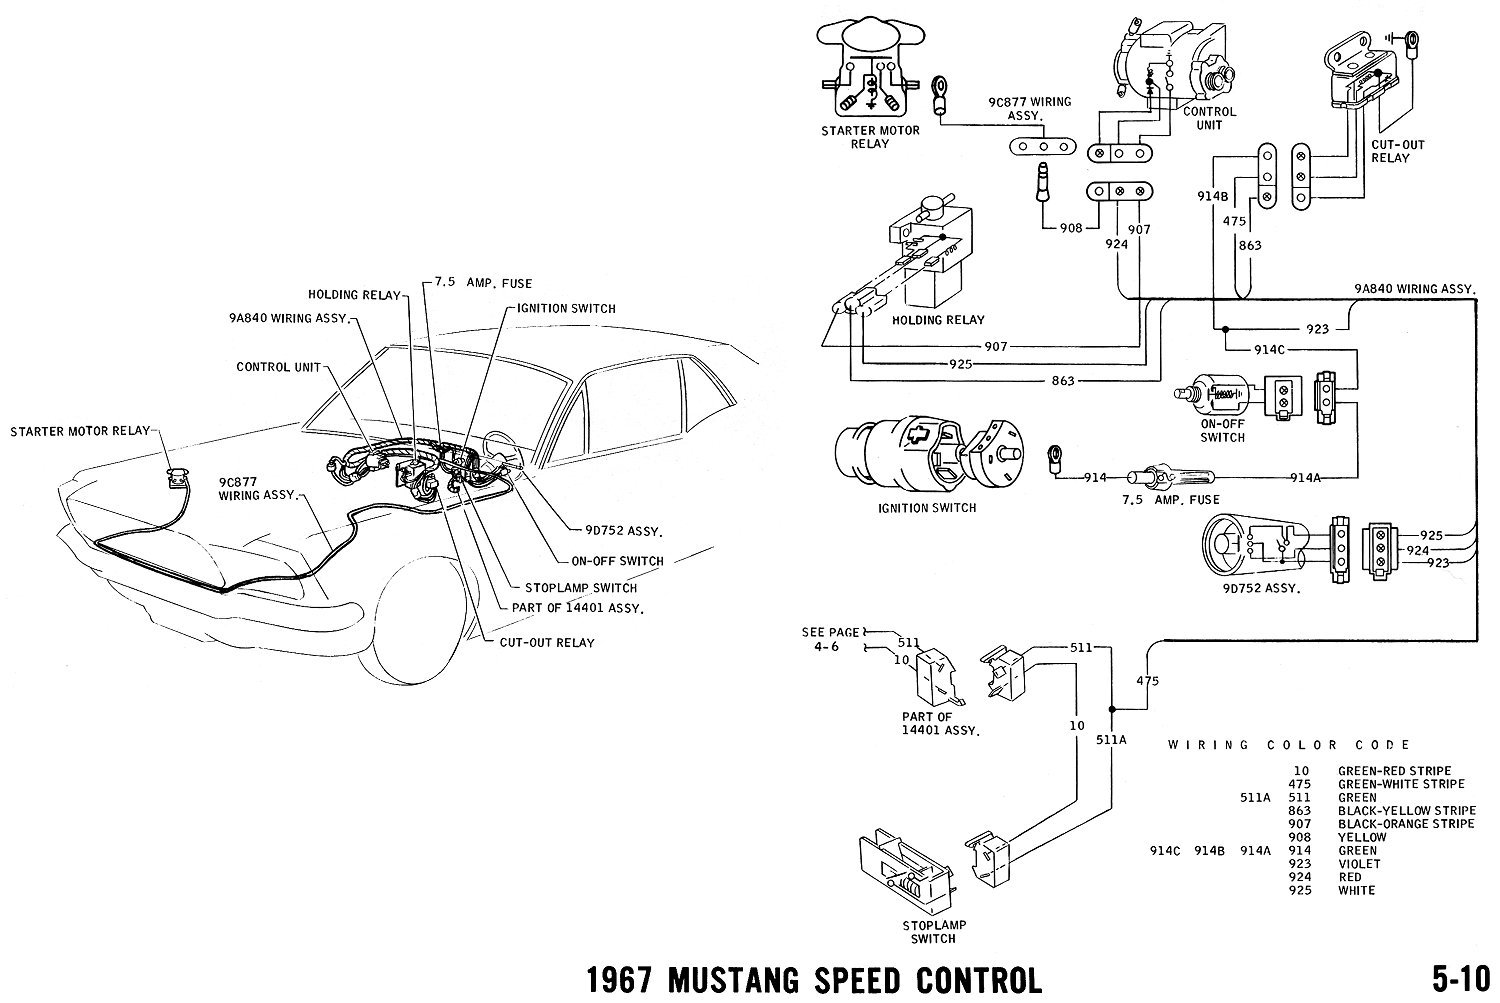 67speed 1967 mustang wiring and vacuum diagrams average joe restoration 65 mustang alternator wiring diagram at gsmx.co